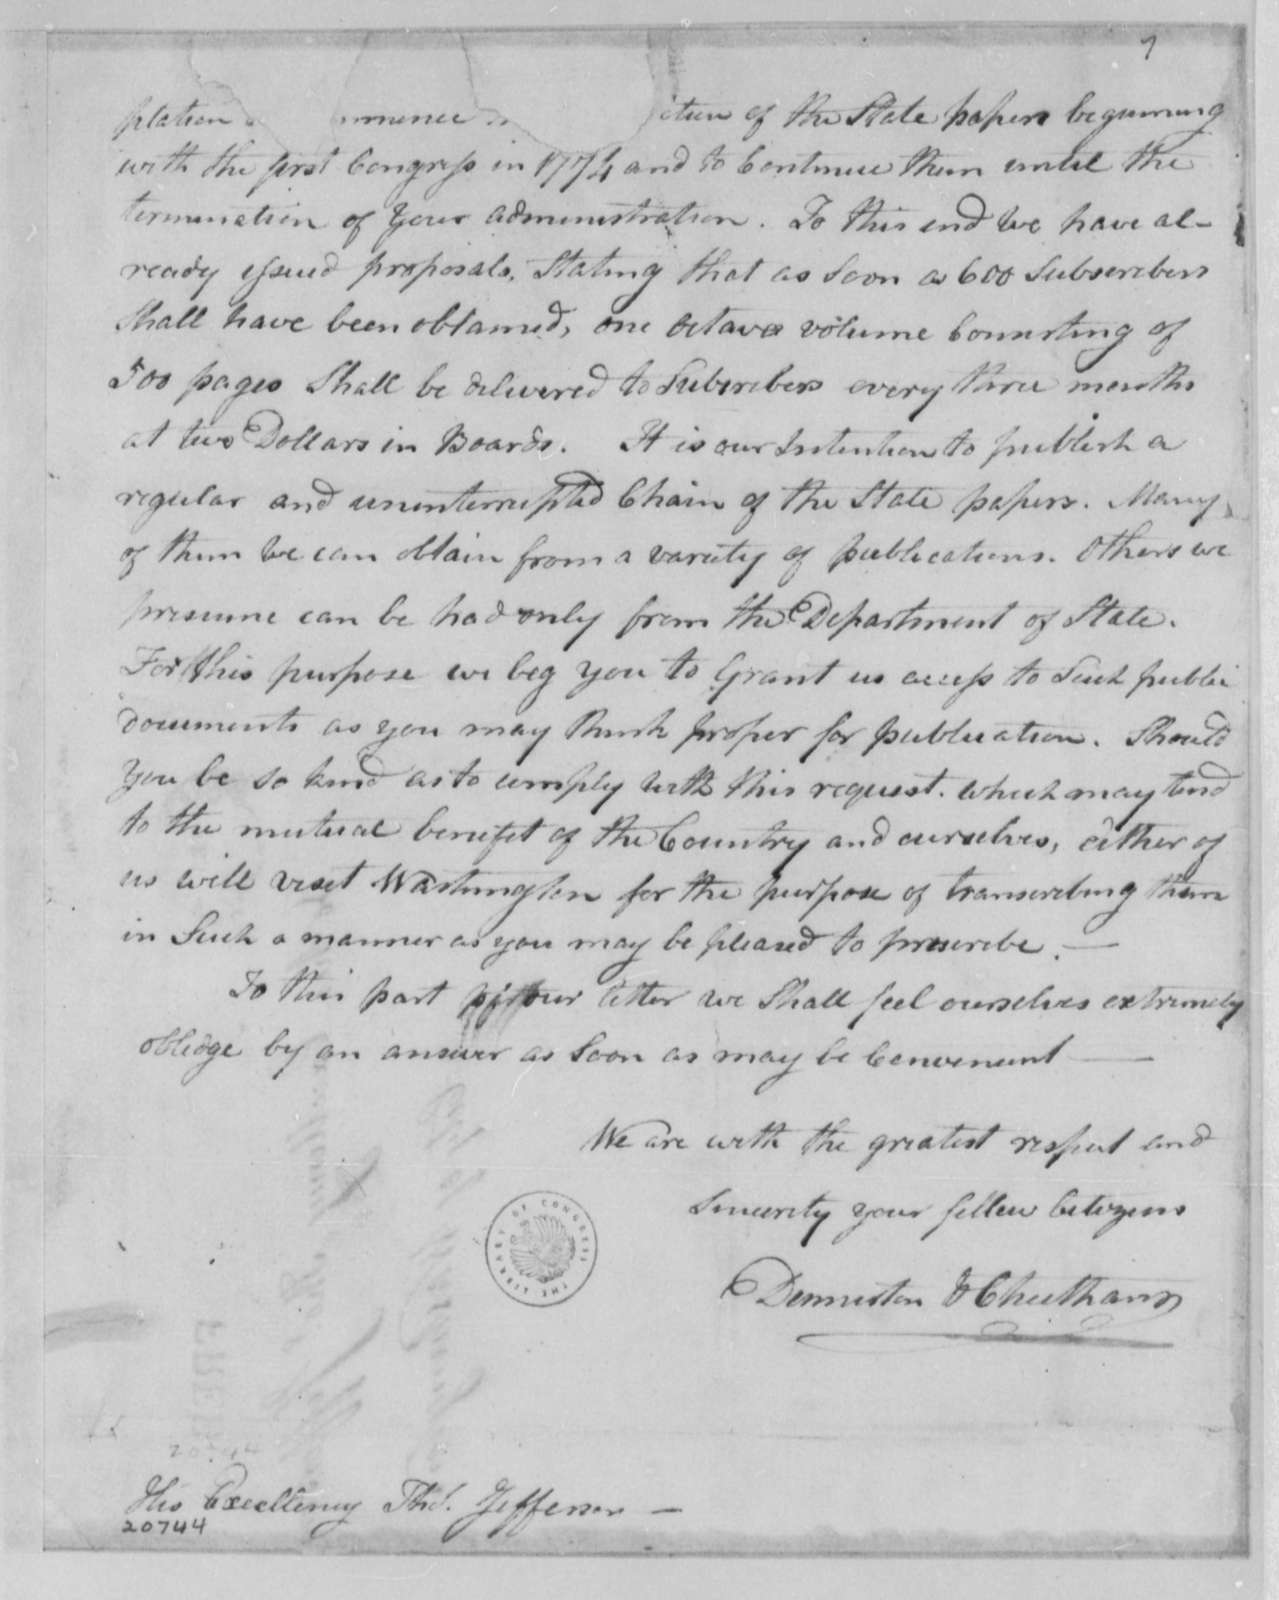 Denniston & Cheetham to Thomas Jefferson, January 30, 1802